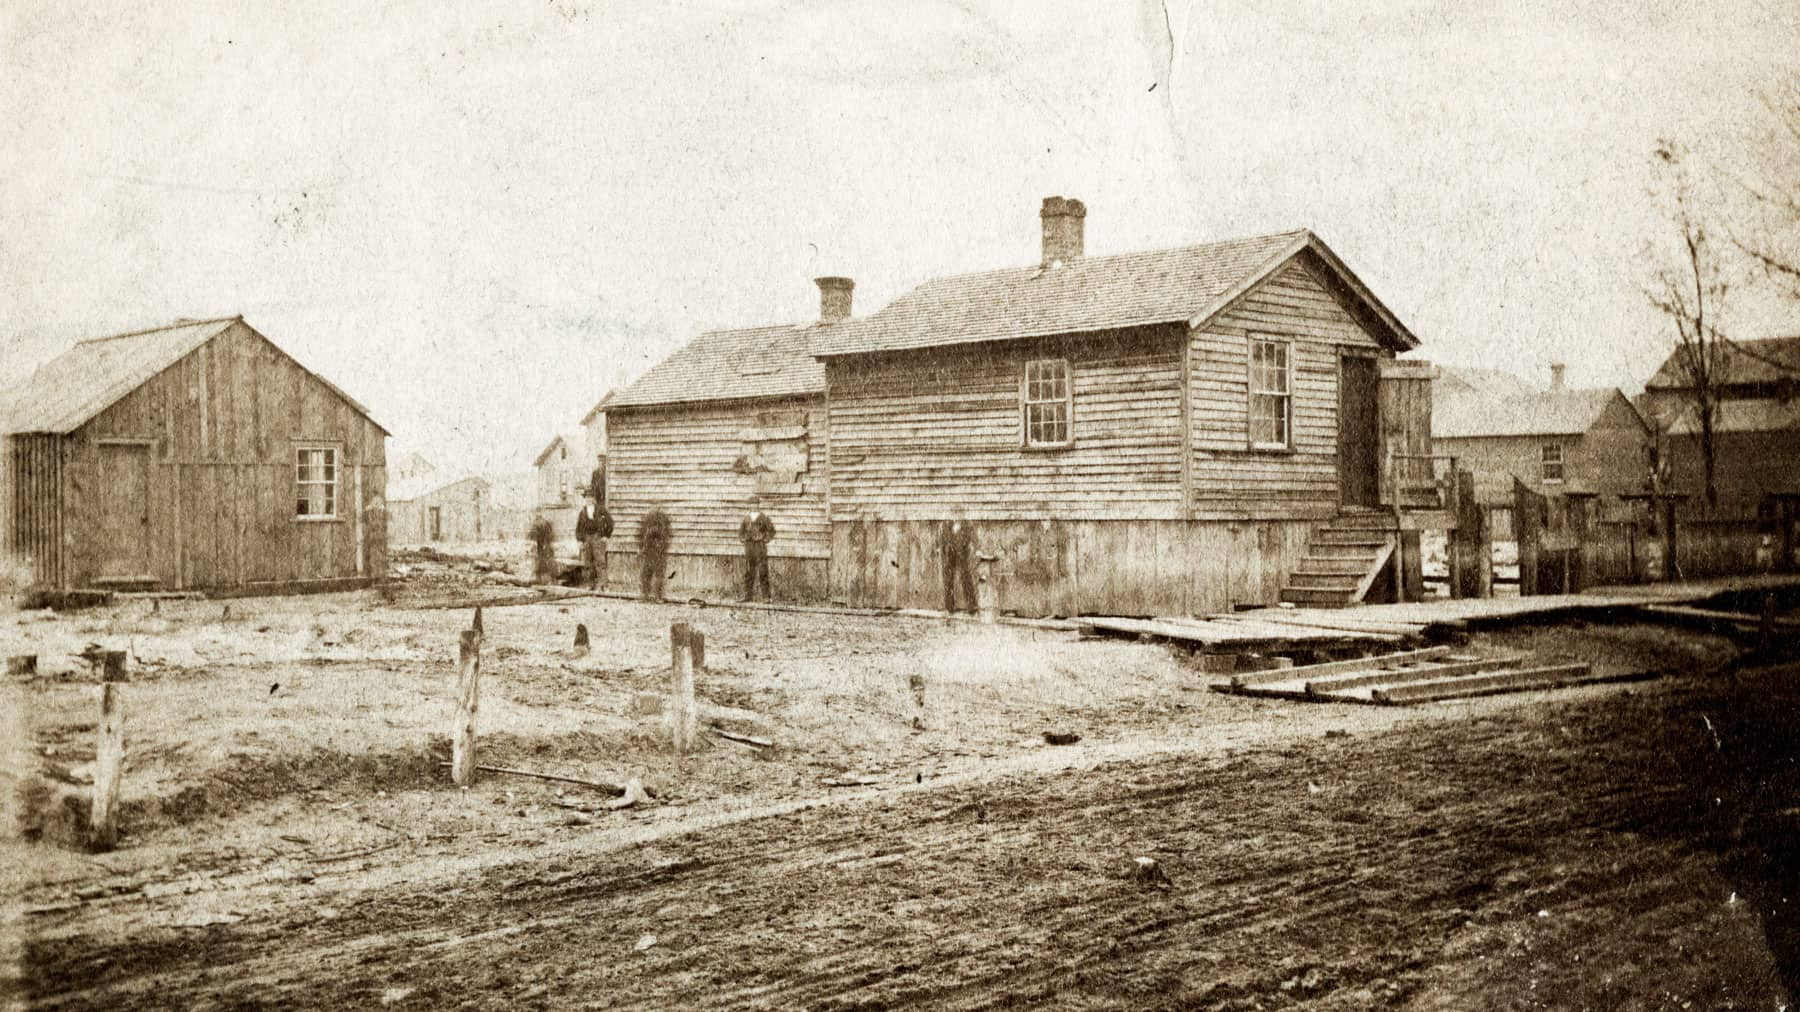 O'Leary family cottage and barn with few people standing outside